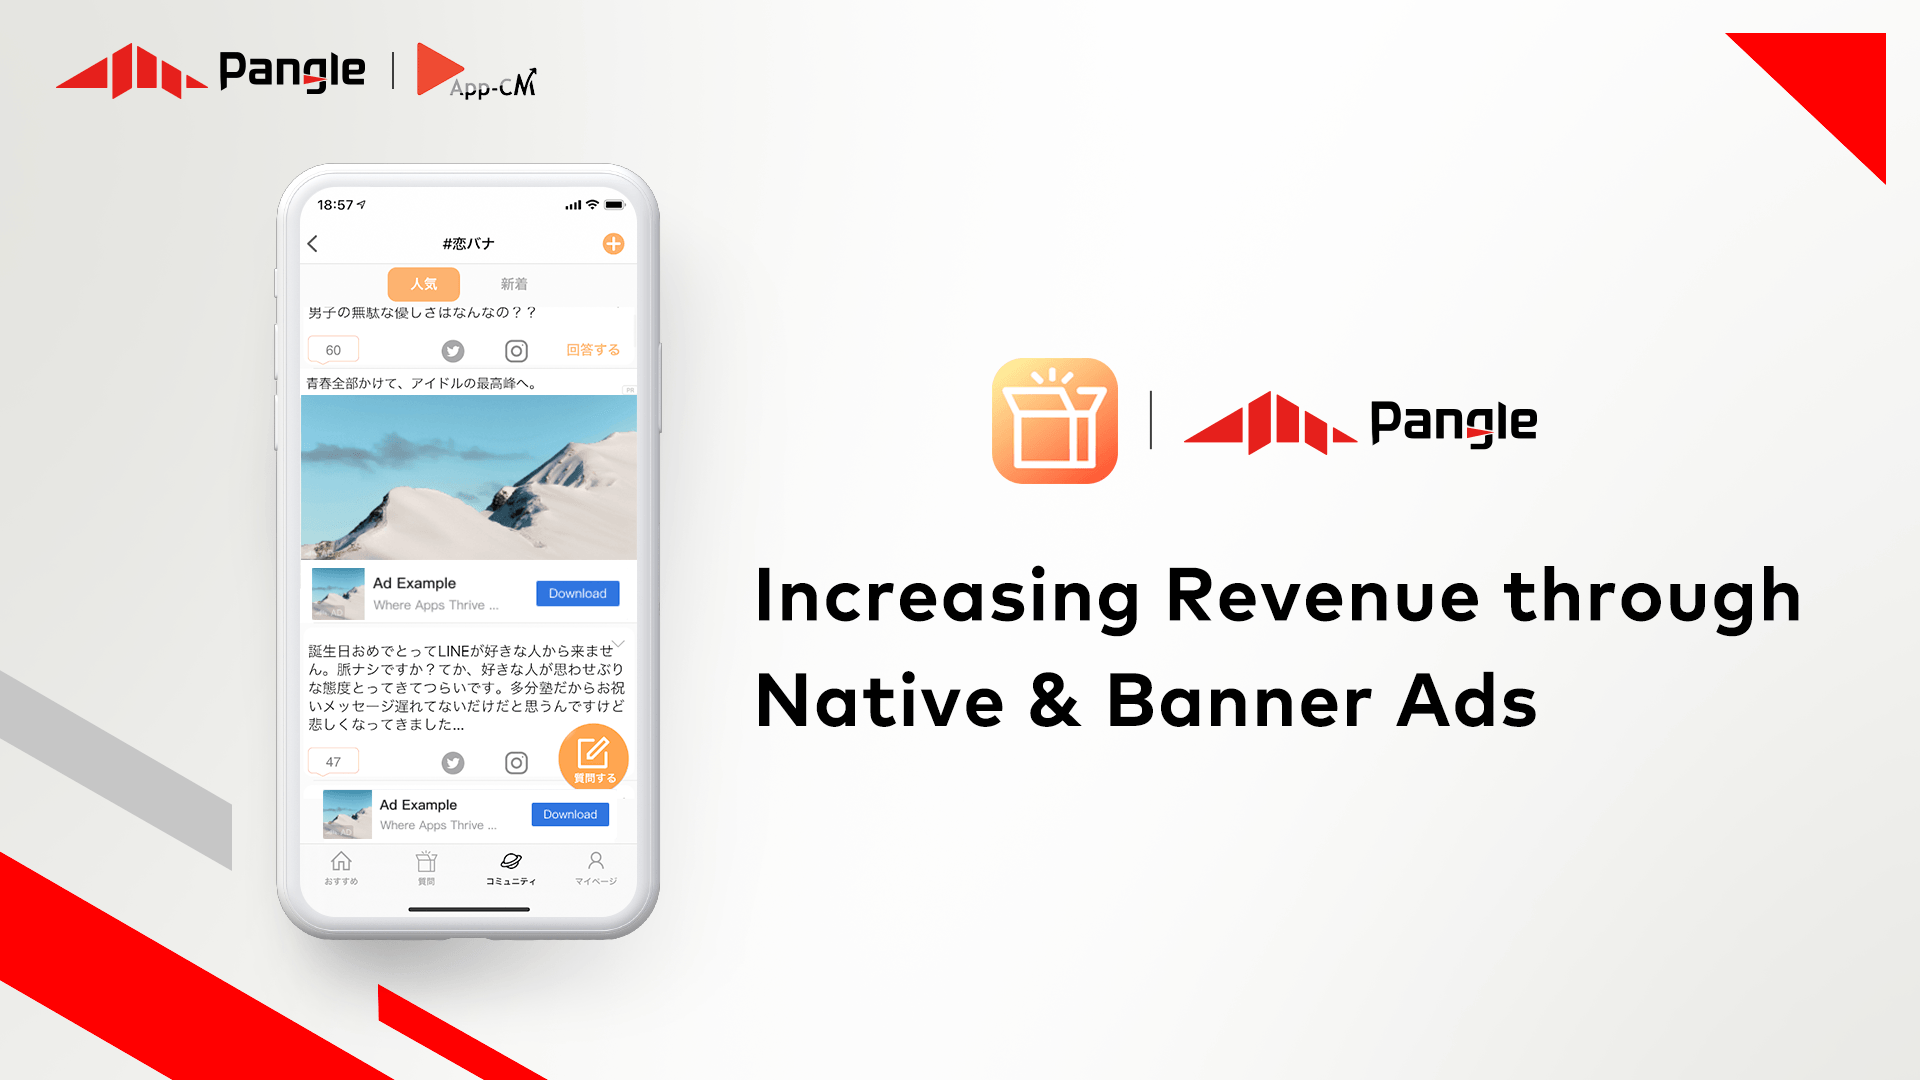 App-CM Reinvents the World and Improves Revenue with Pangle - Box Fresh